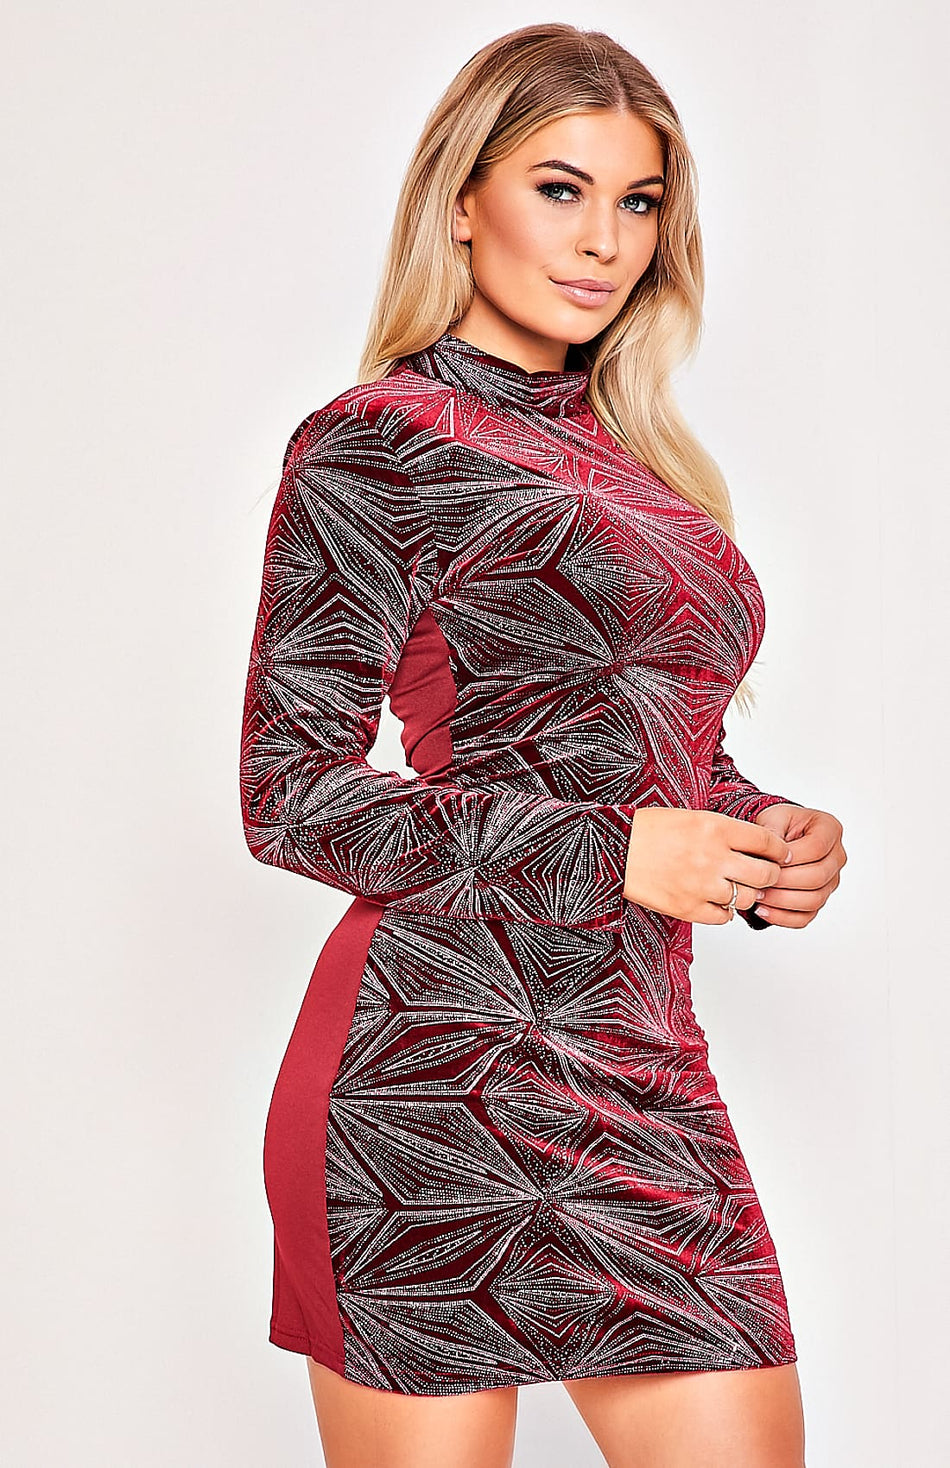 Rose Red Velvet Geometric Design, figurbetontes Kleid